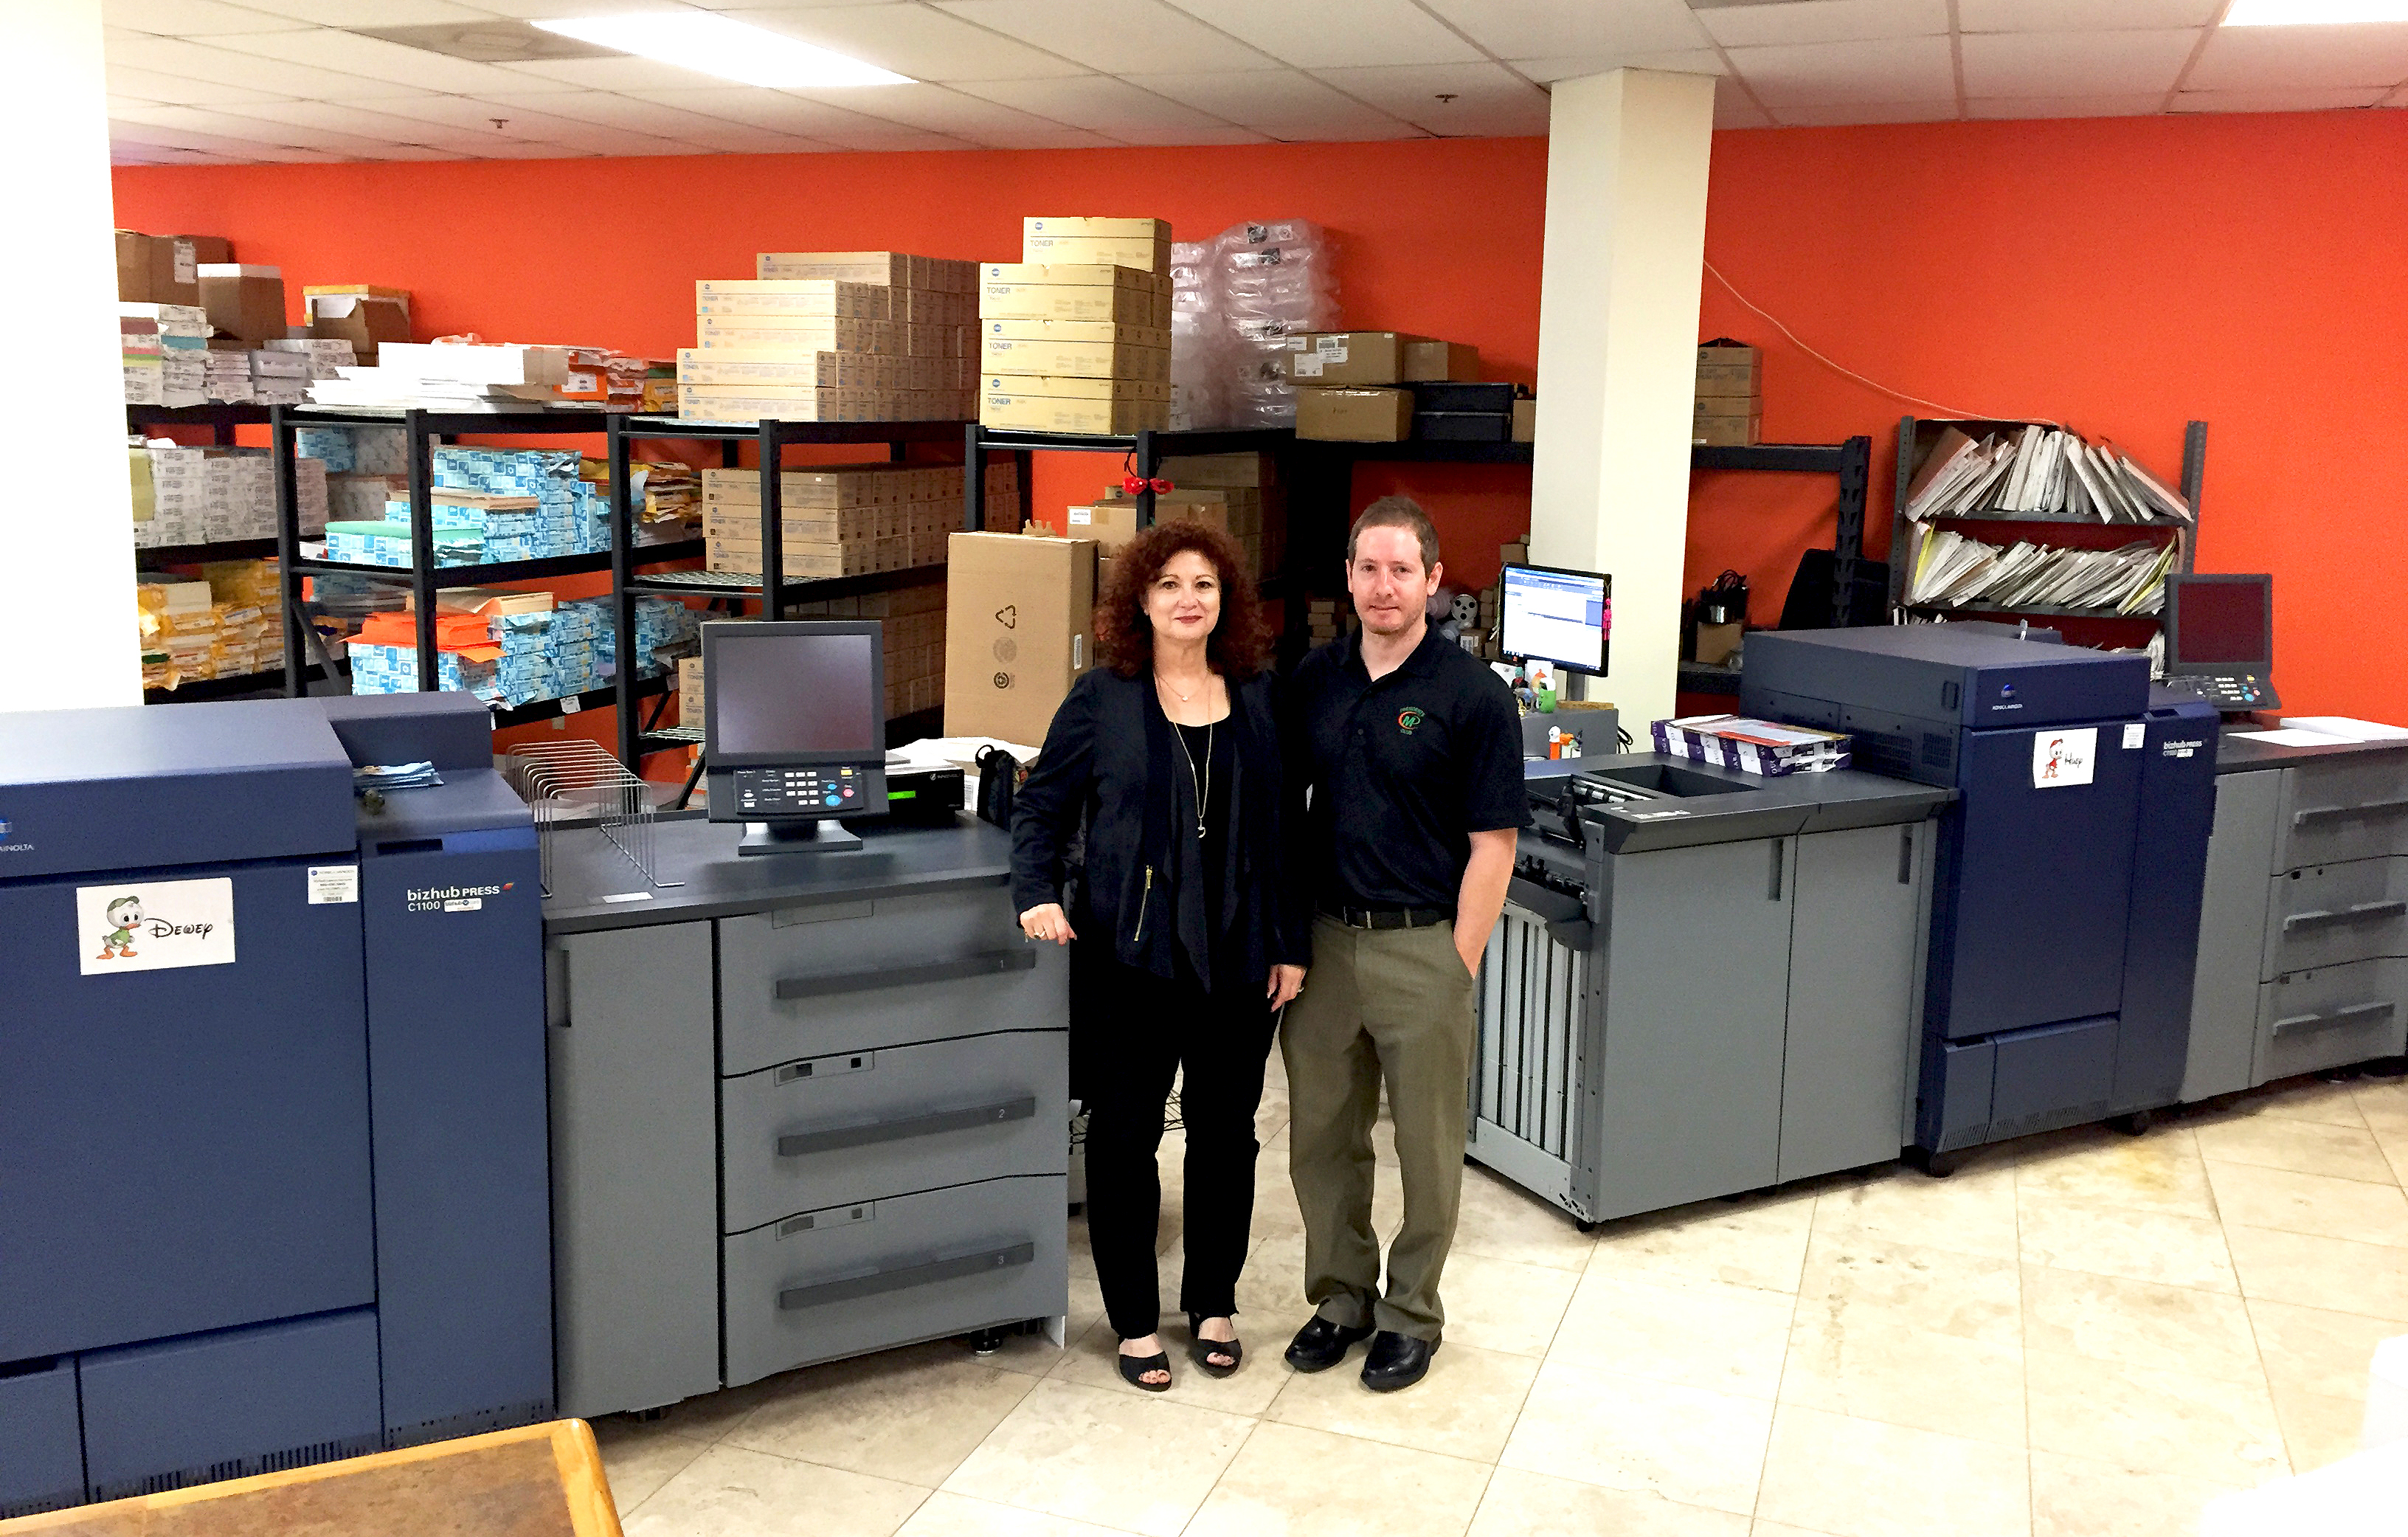 Minuteman Press franchise owner Matthew Perry (right) and his mother Gail alongside two Konica Minolta bizhub PRESS® 1100s.